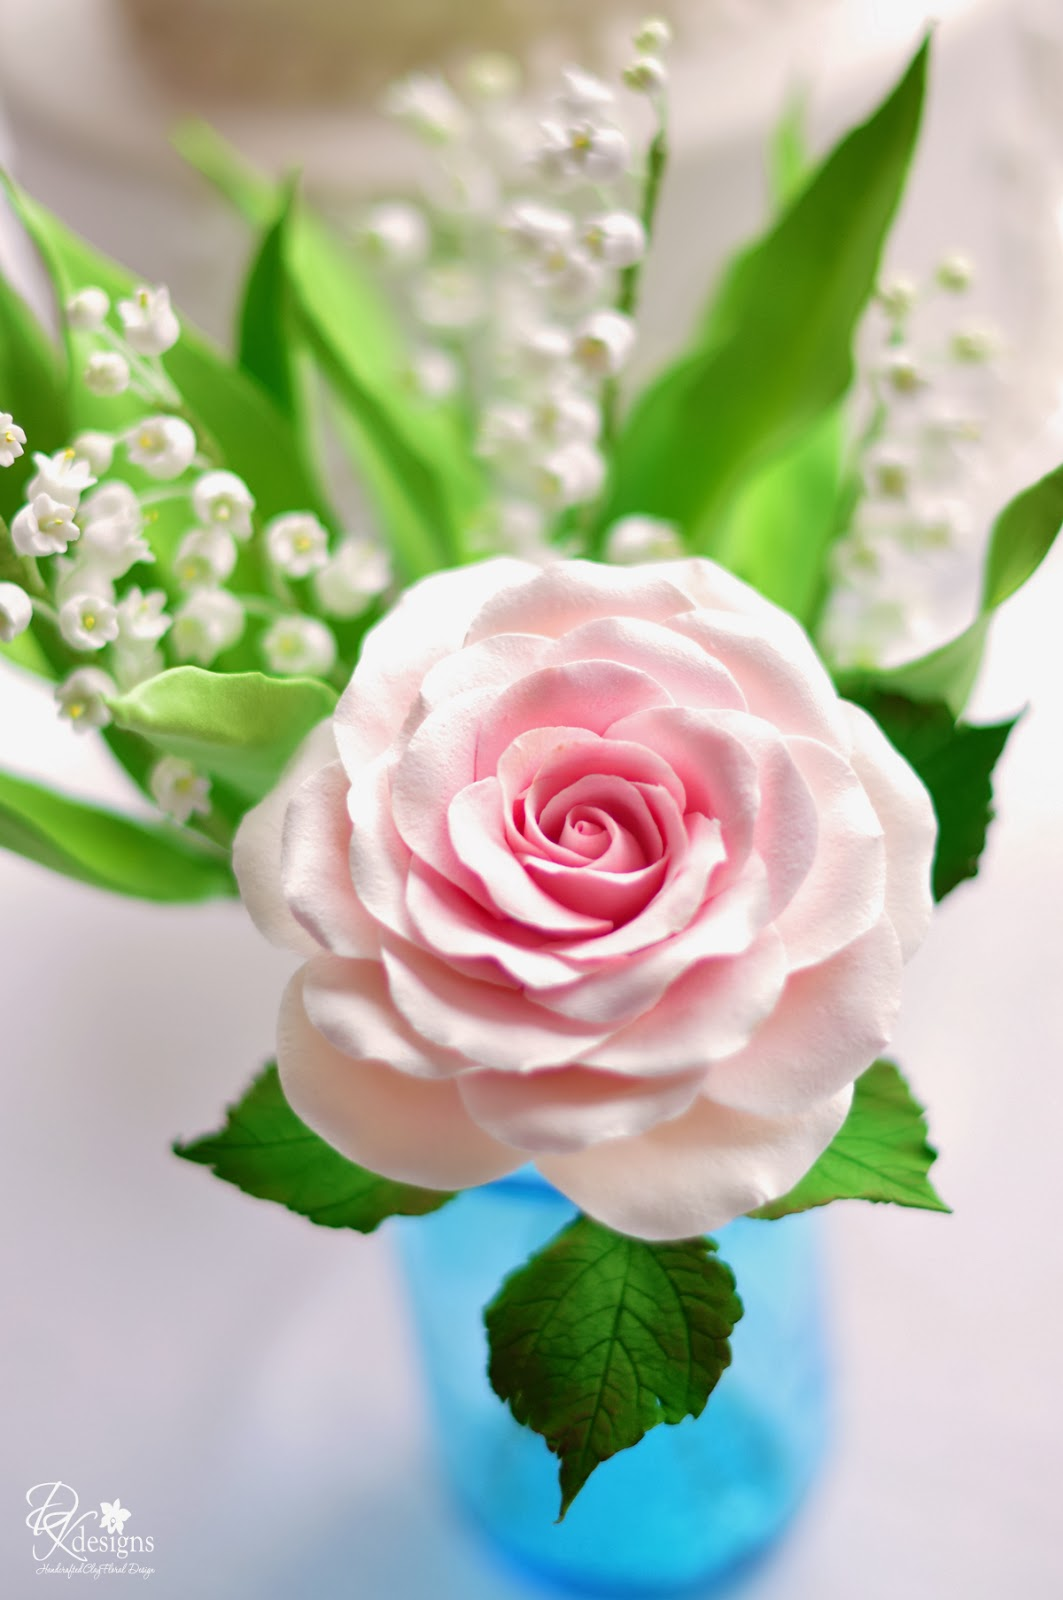 Dk designs lily of the valley rose and hydrangeas for Lily rose designer